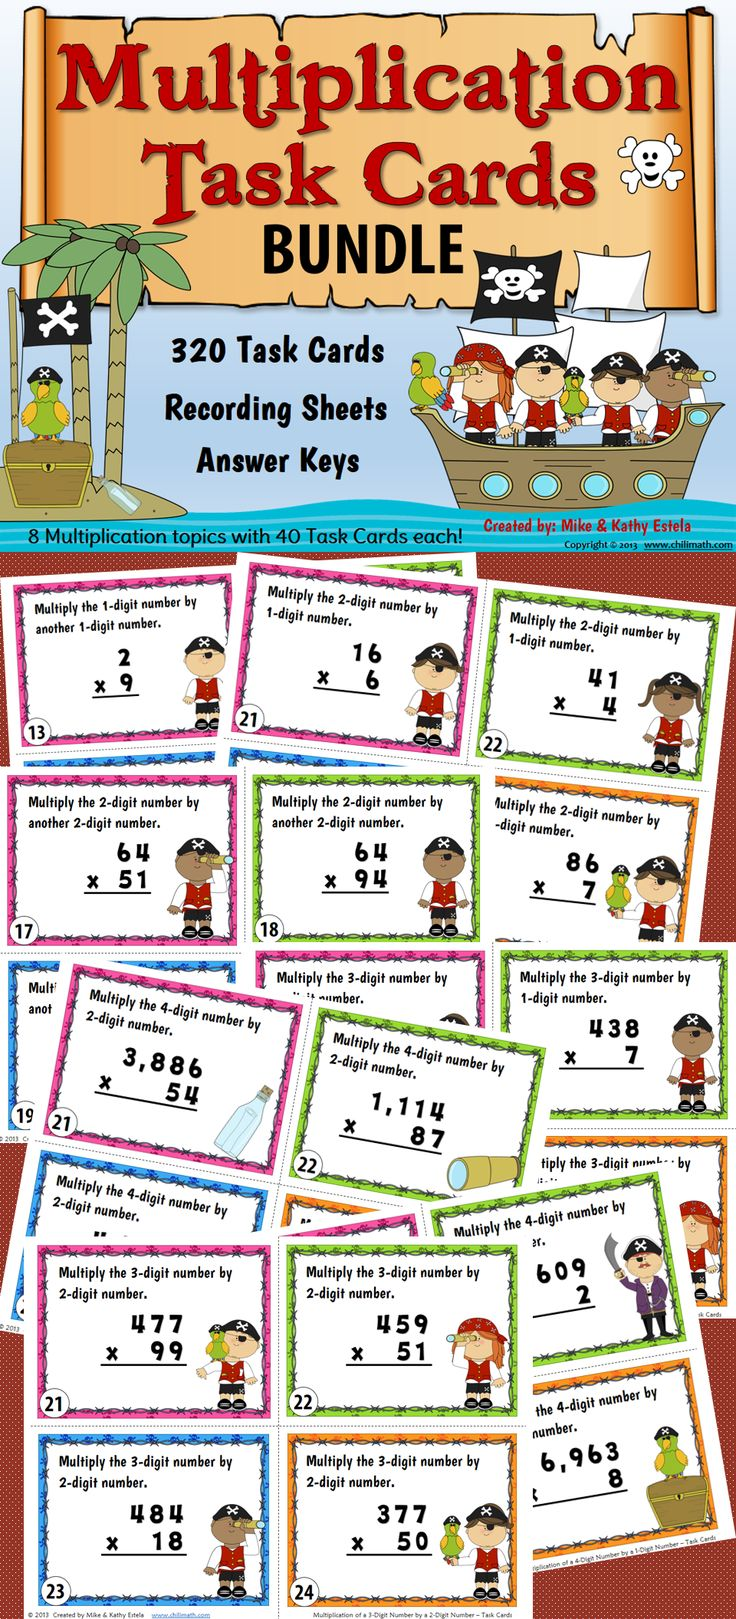 Save 20% on this Multiplication Task Cards BUNDLE! It has a total of 320 task cards which you may assign for individual practice, as a pair/group activity, or use in a scoot game with your students. $